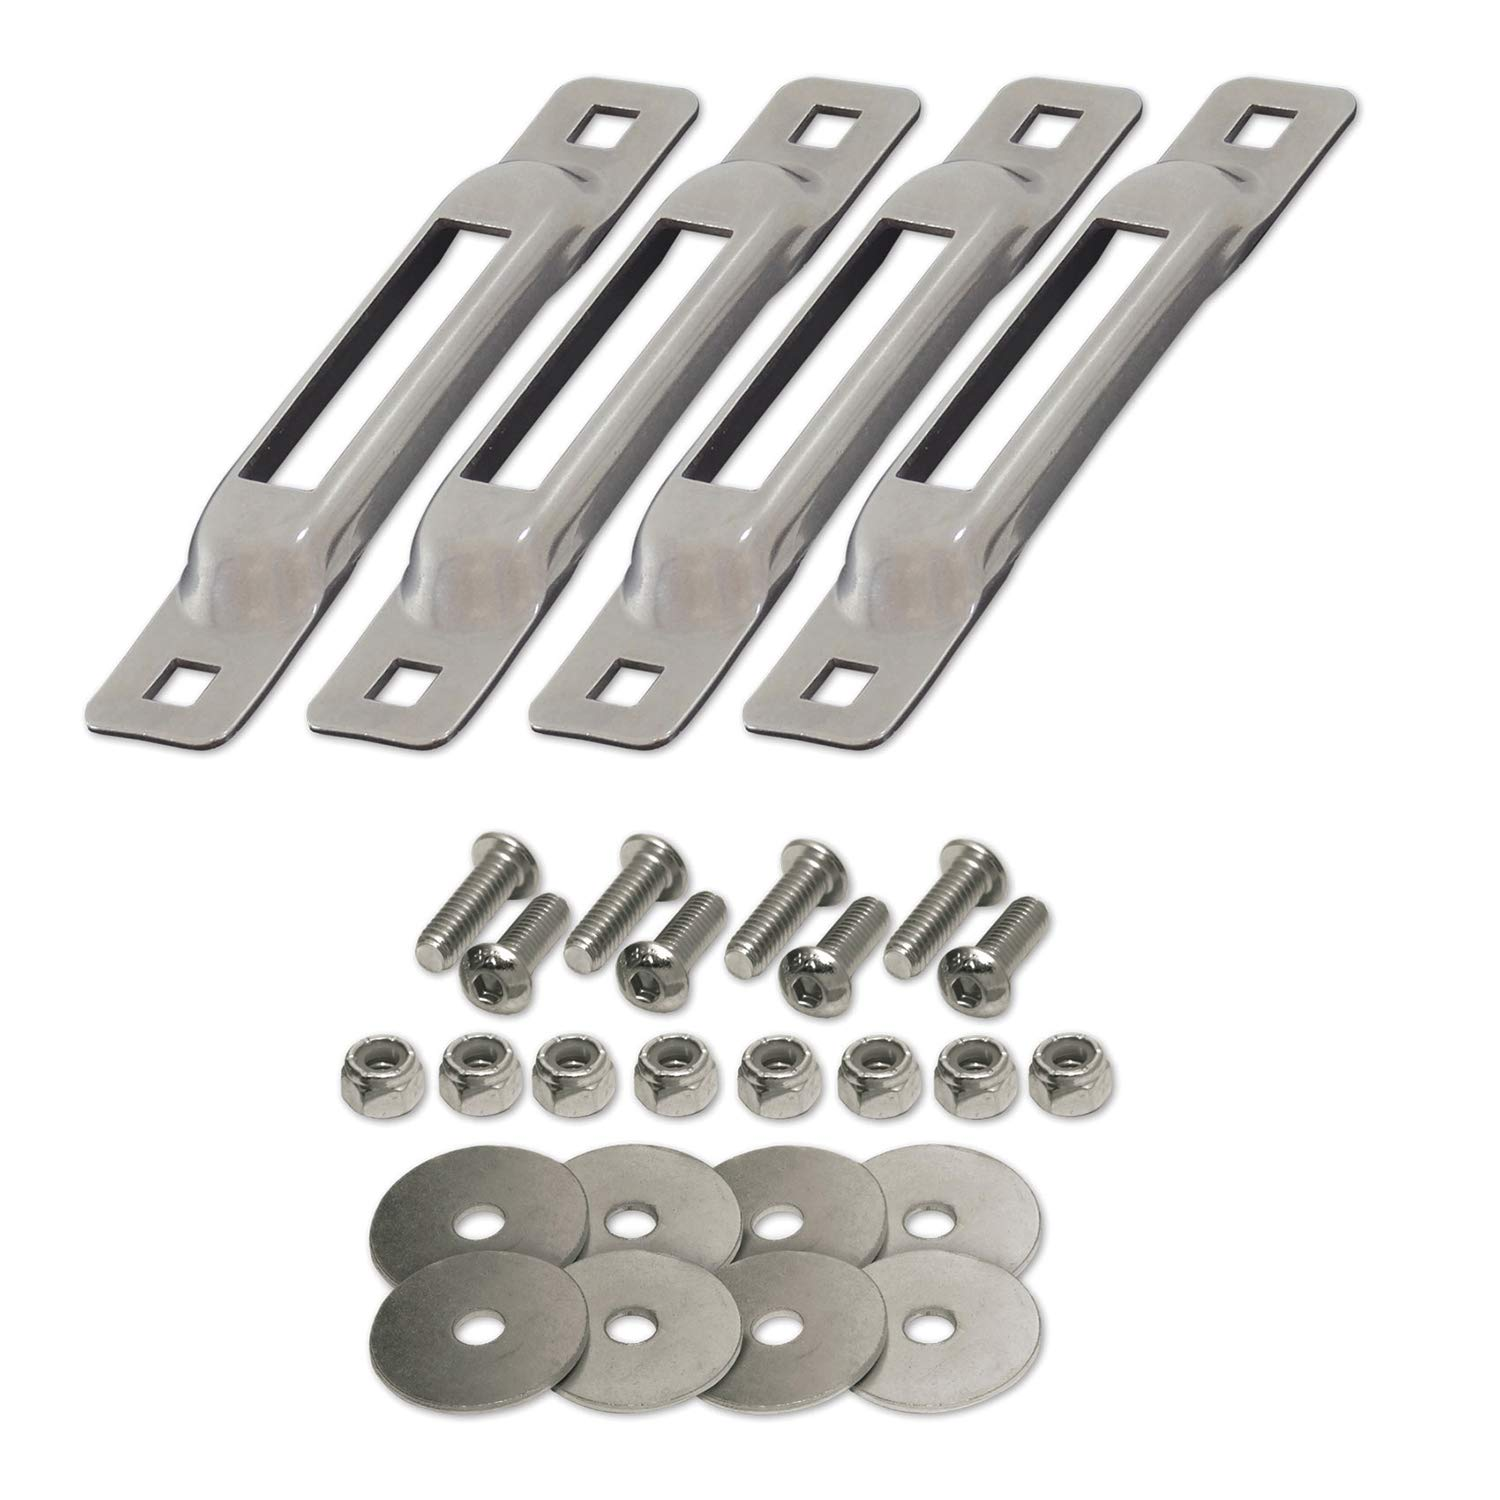 SNAPLOCS ZINC 4 Pack with Fasteners E-Track Single Strap Anchors